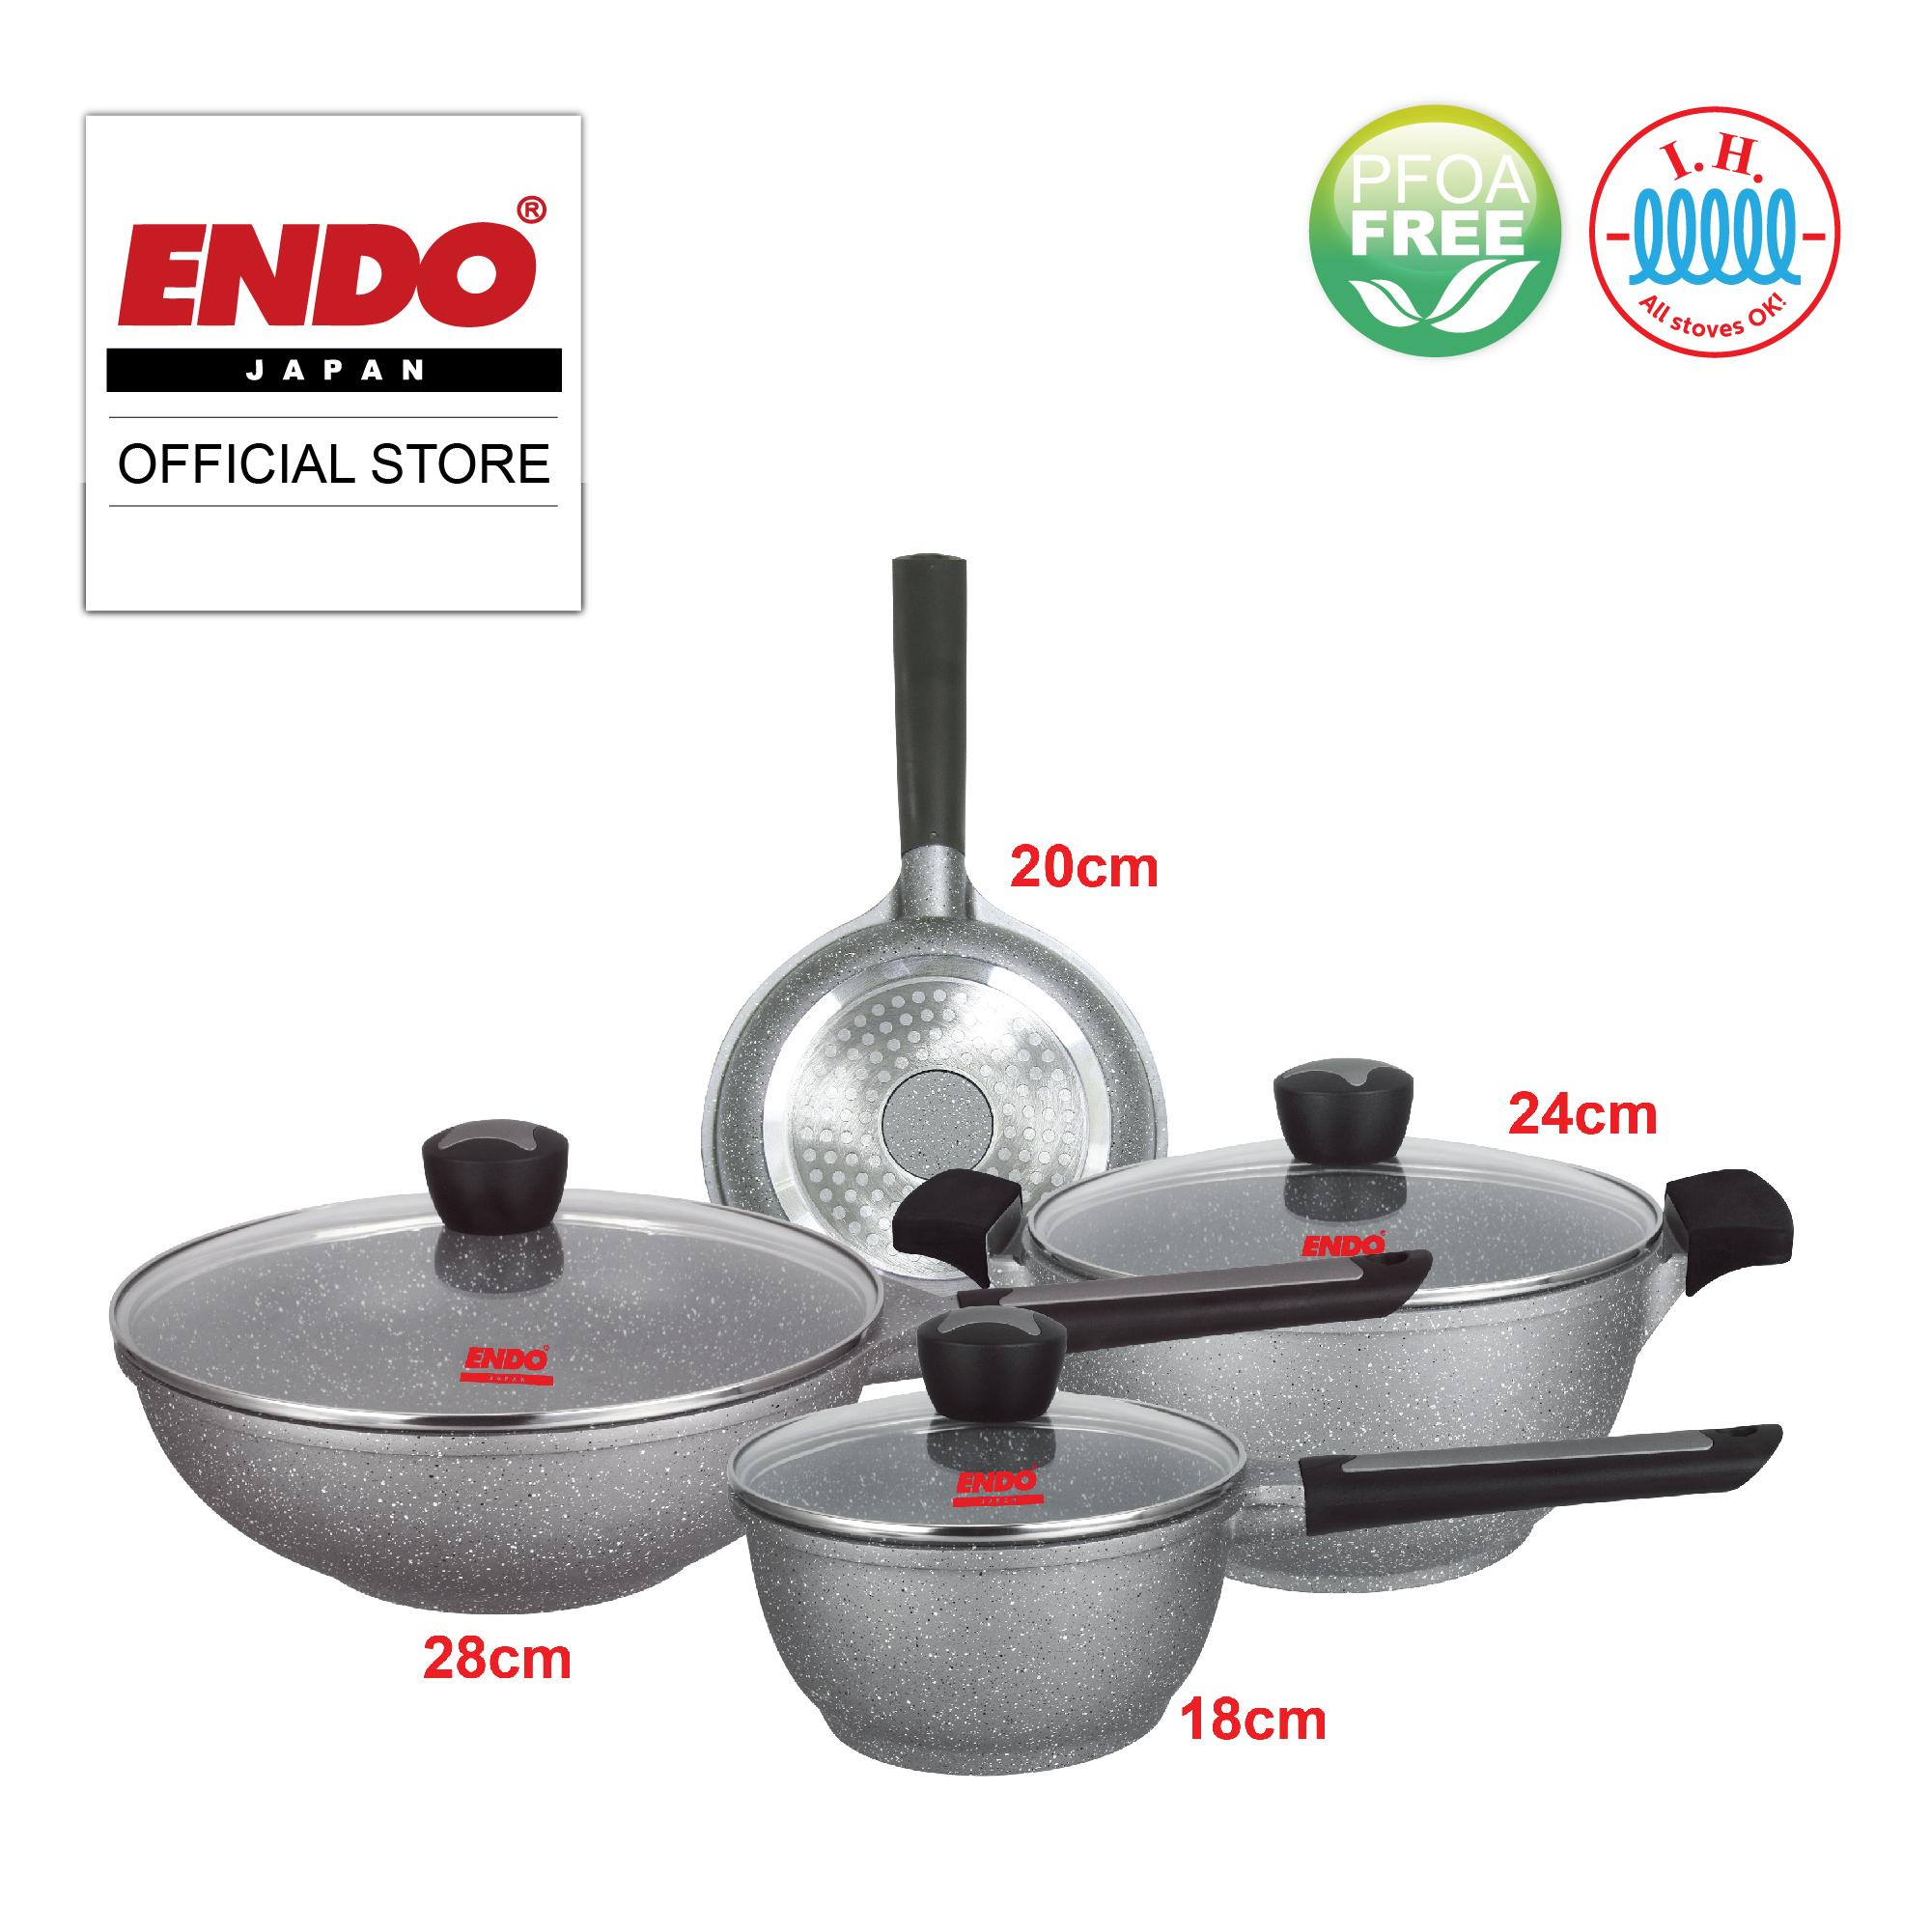 dad7b121bb7 Endo 7PC Induction Die Cast Cookware Set - E-DCS7IH